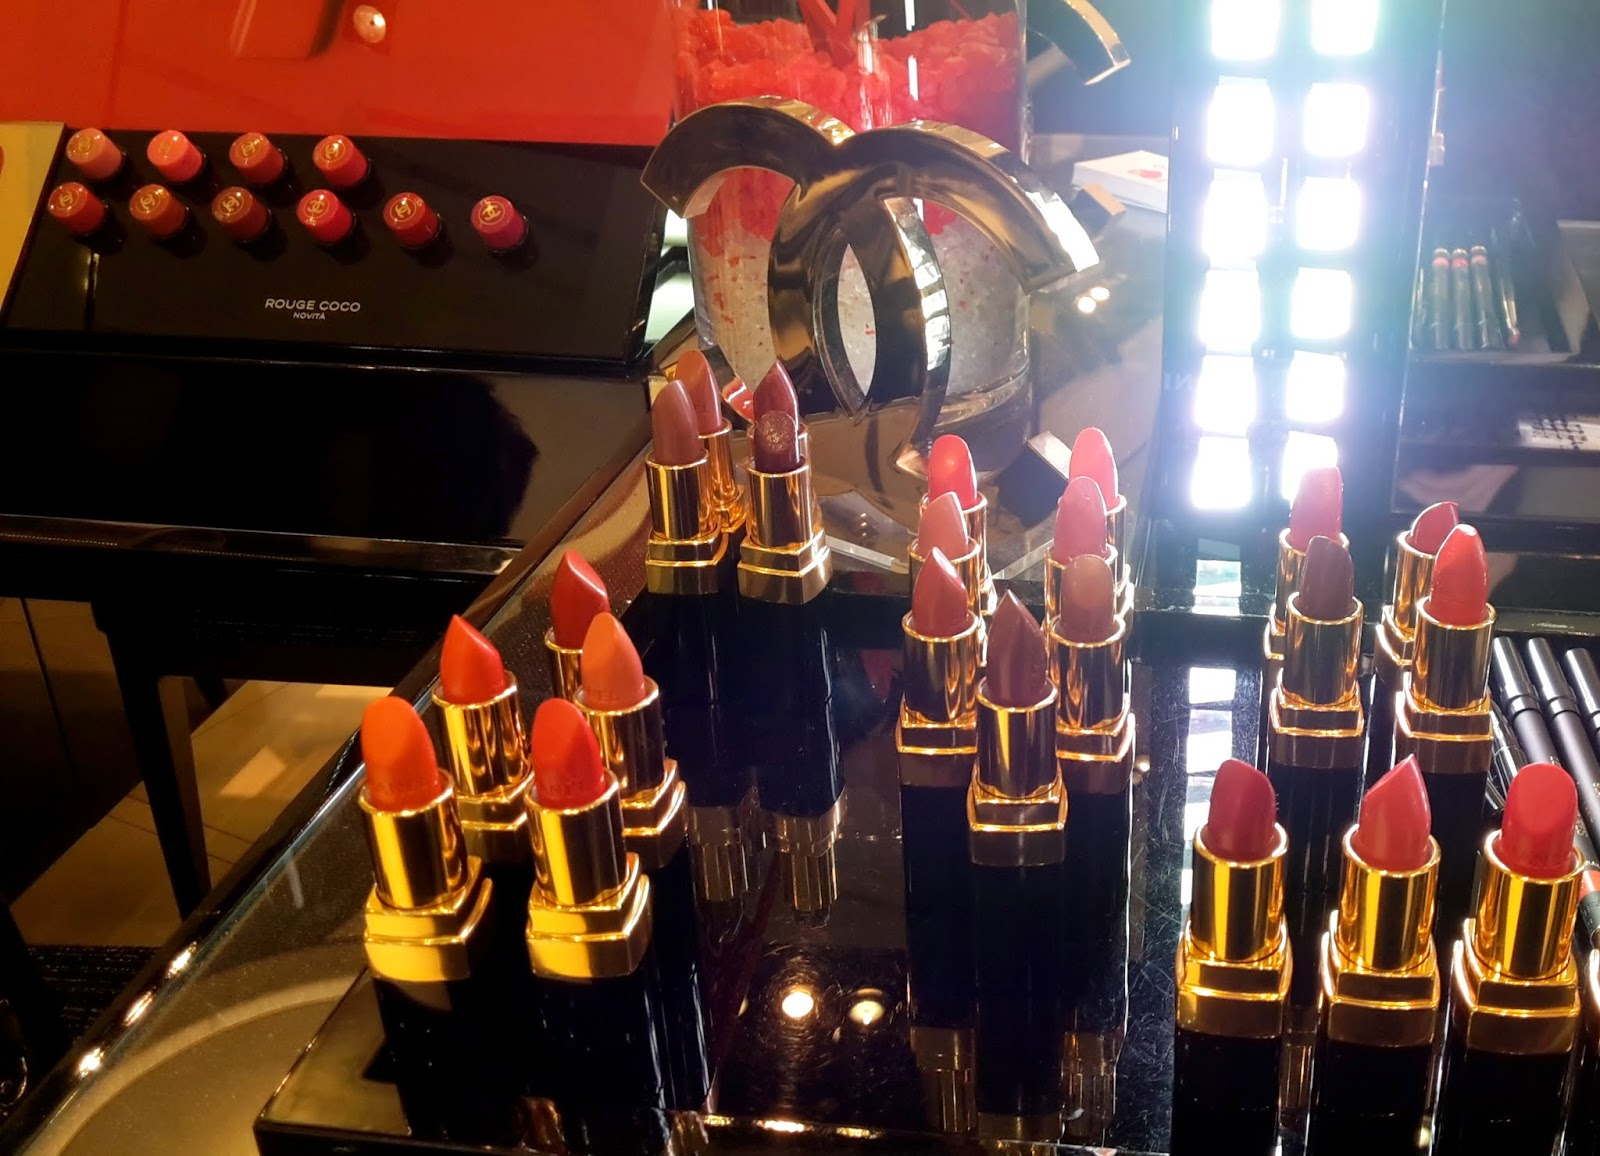 rouge coco chanel lipstick rossetto, rouge coco chanel gabrielle 444